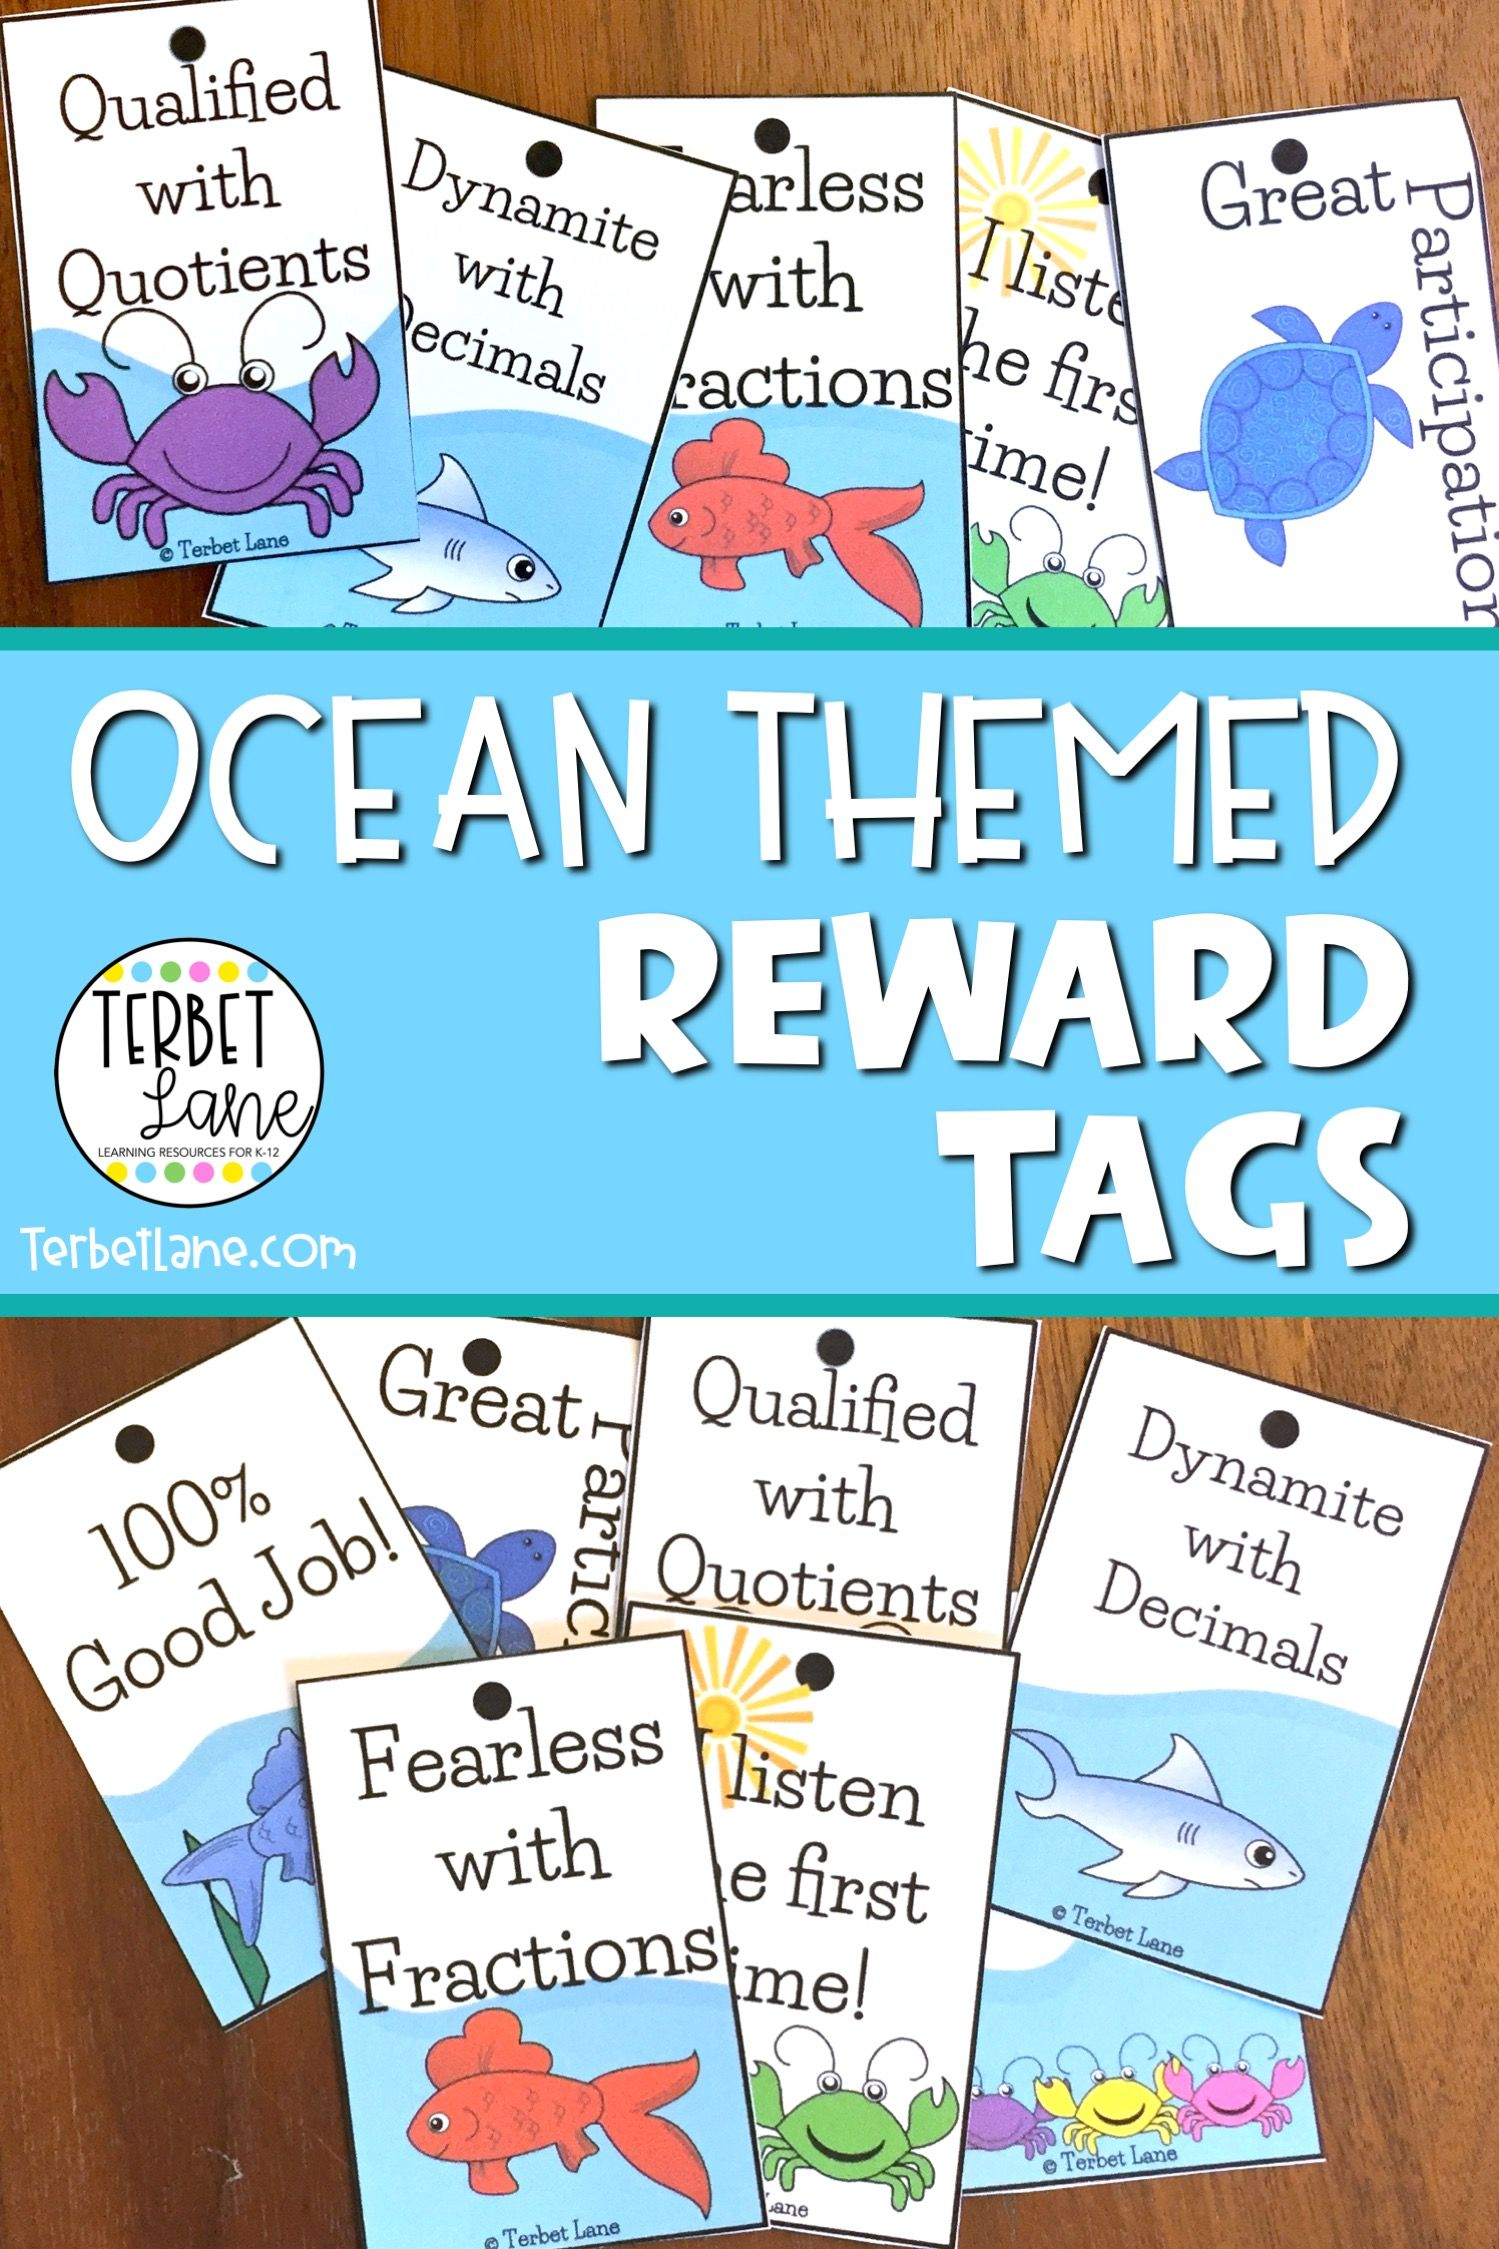 These Ocean Themed Reward Tags Are The Perfect Way To Show